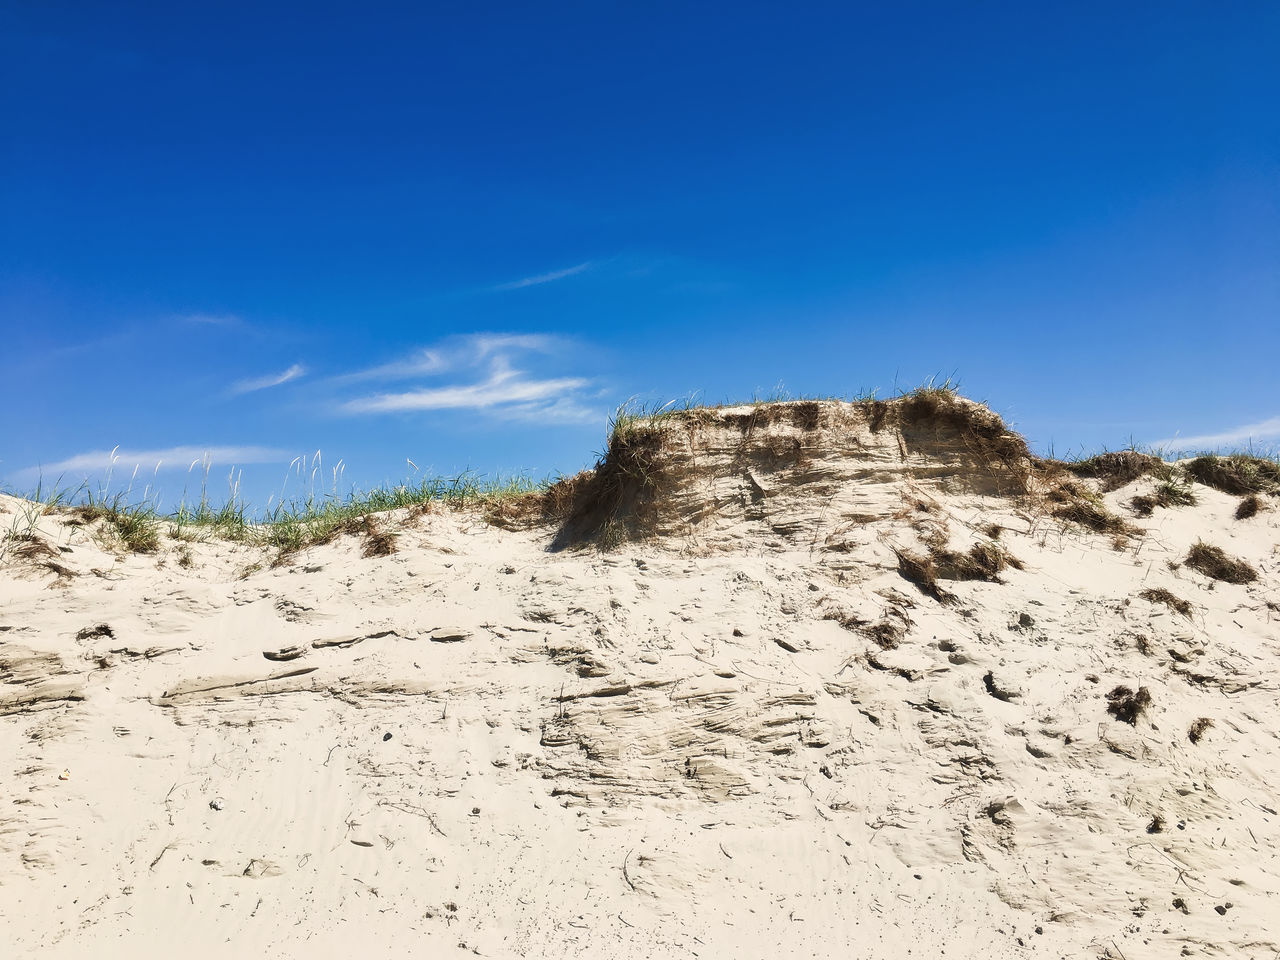 Beauty In Nature Blue Clear Sky Day Nature No People Outdoors Sand Scenics Sky Sunlight